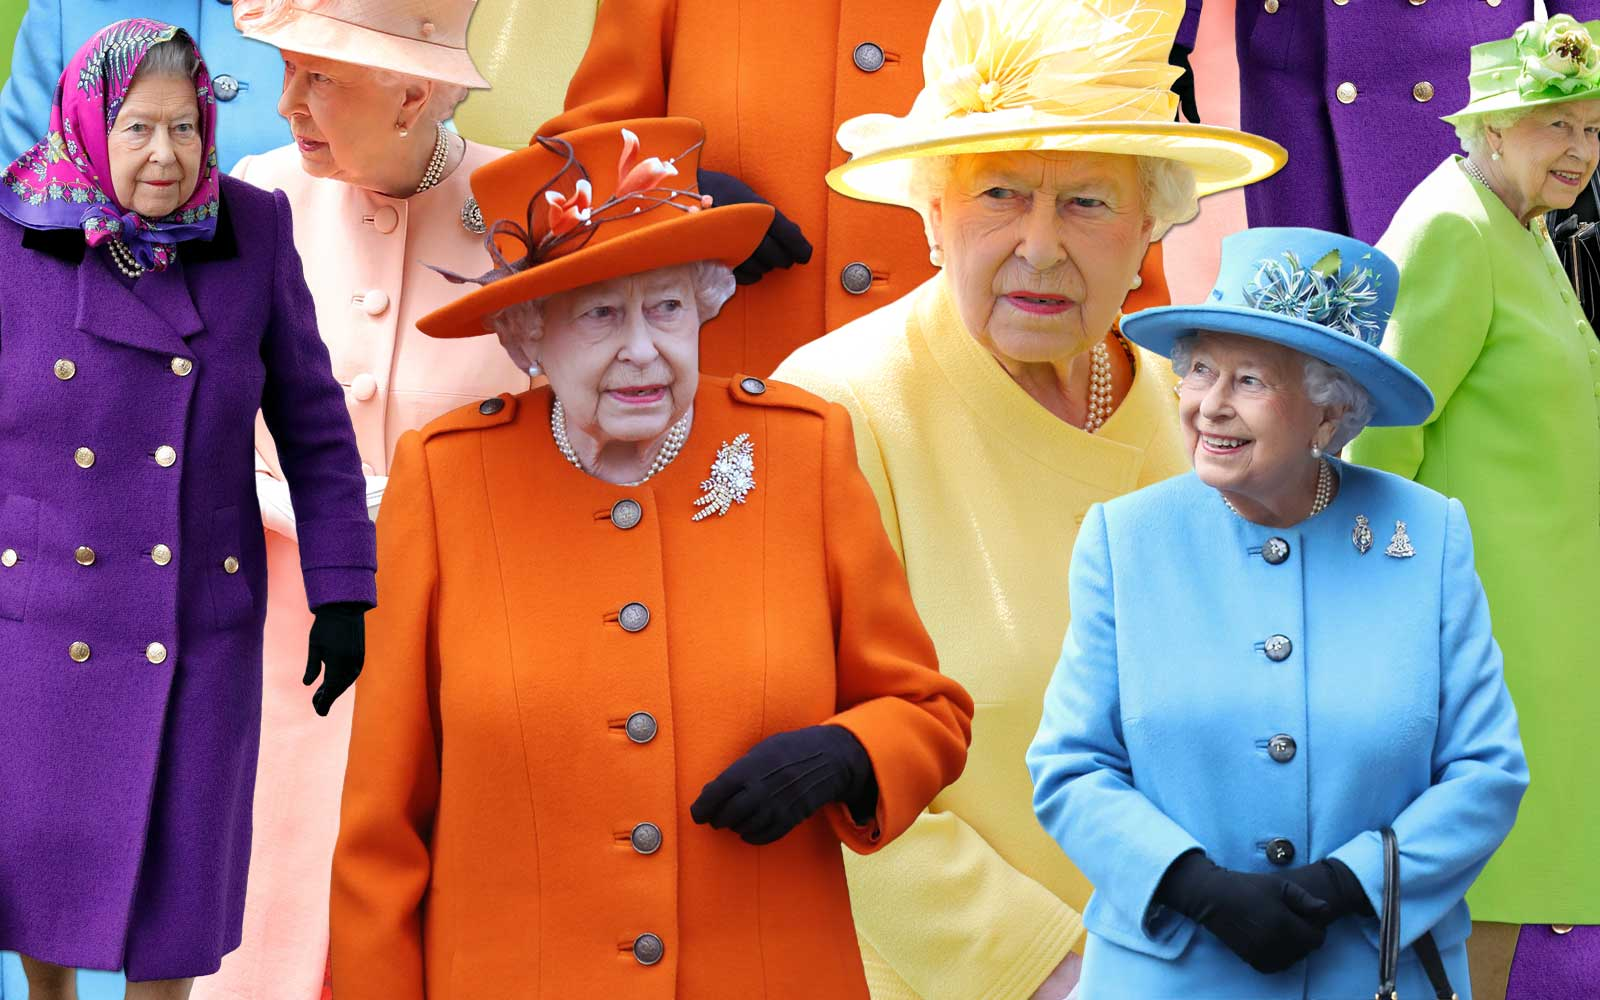 Queen Elizabeth II in bright colored outfits